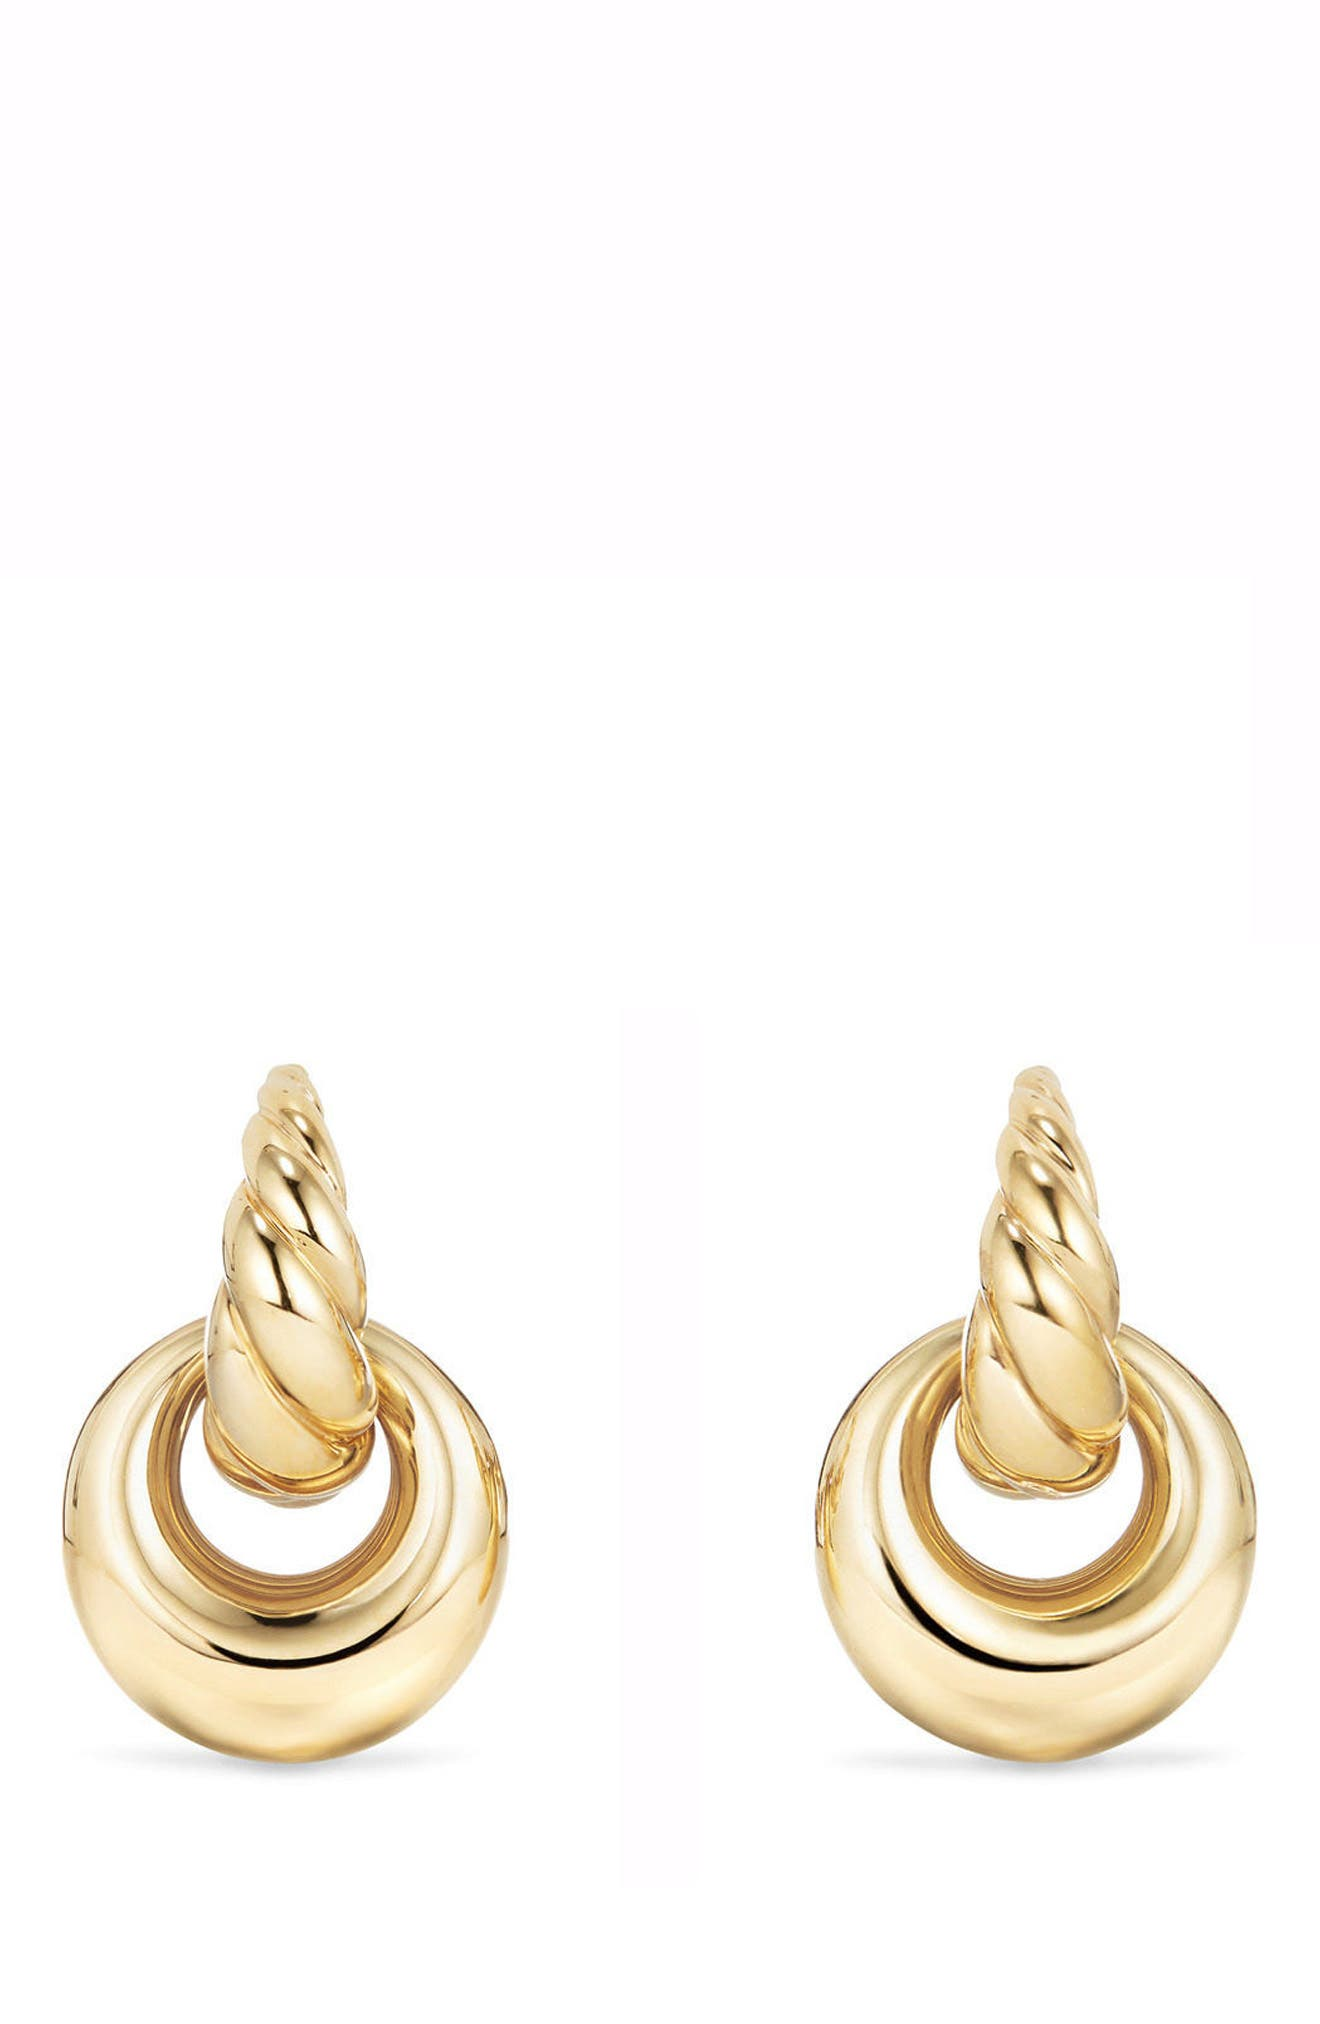 Pure Form<sup>®</sup> Drop Earrings in 18K Yellow Gold,                         Main,                         color, YELLOW GOLD